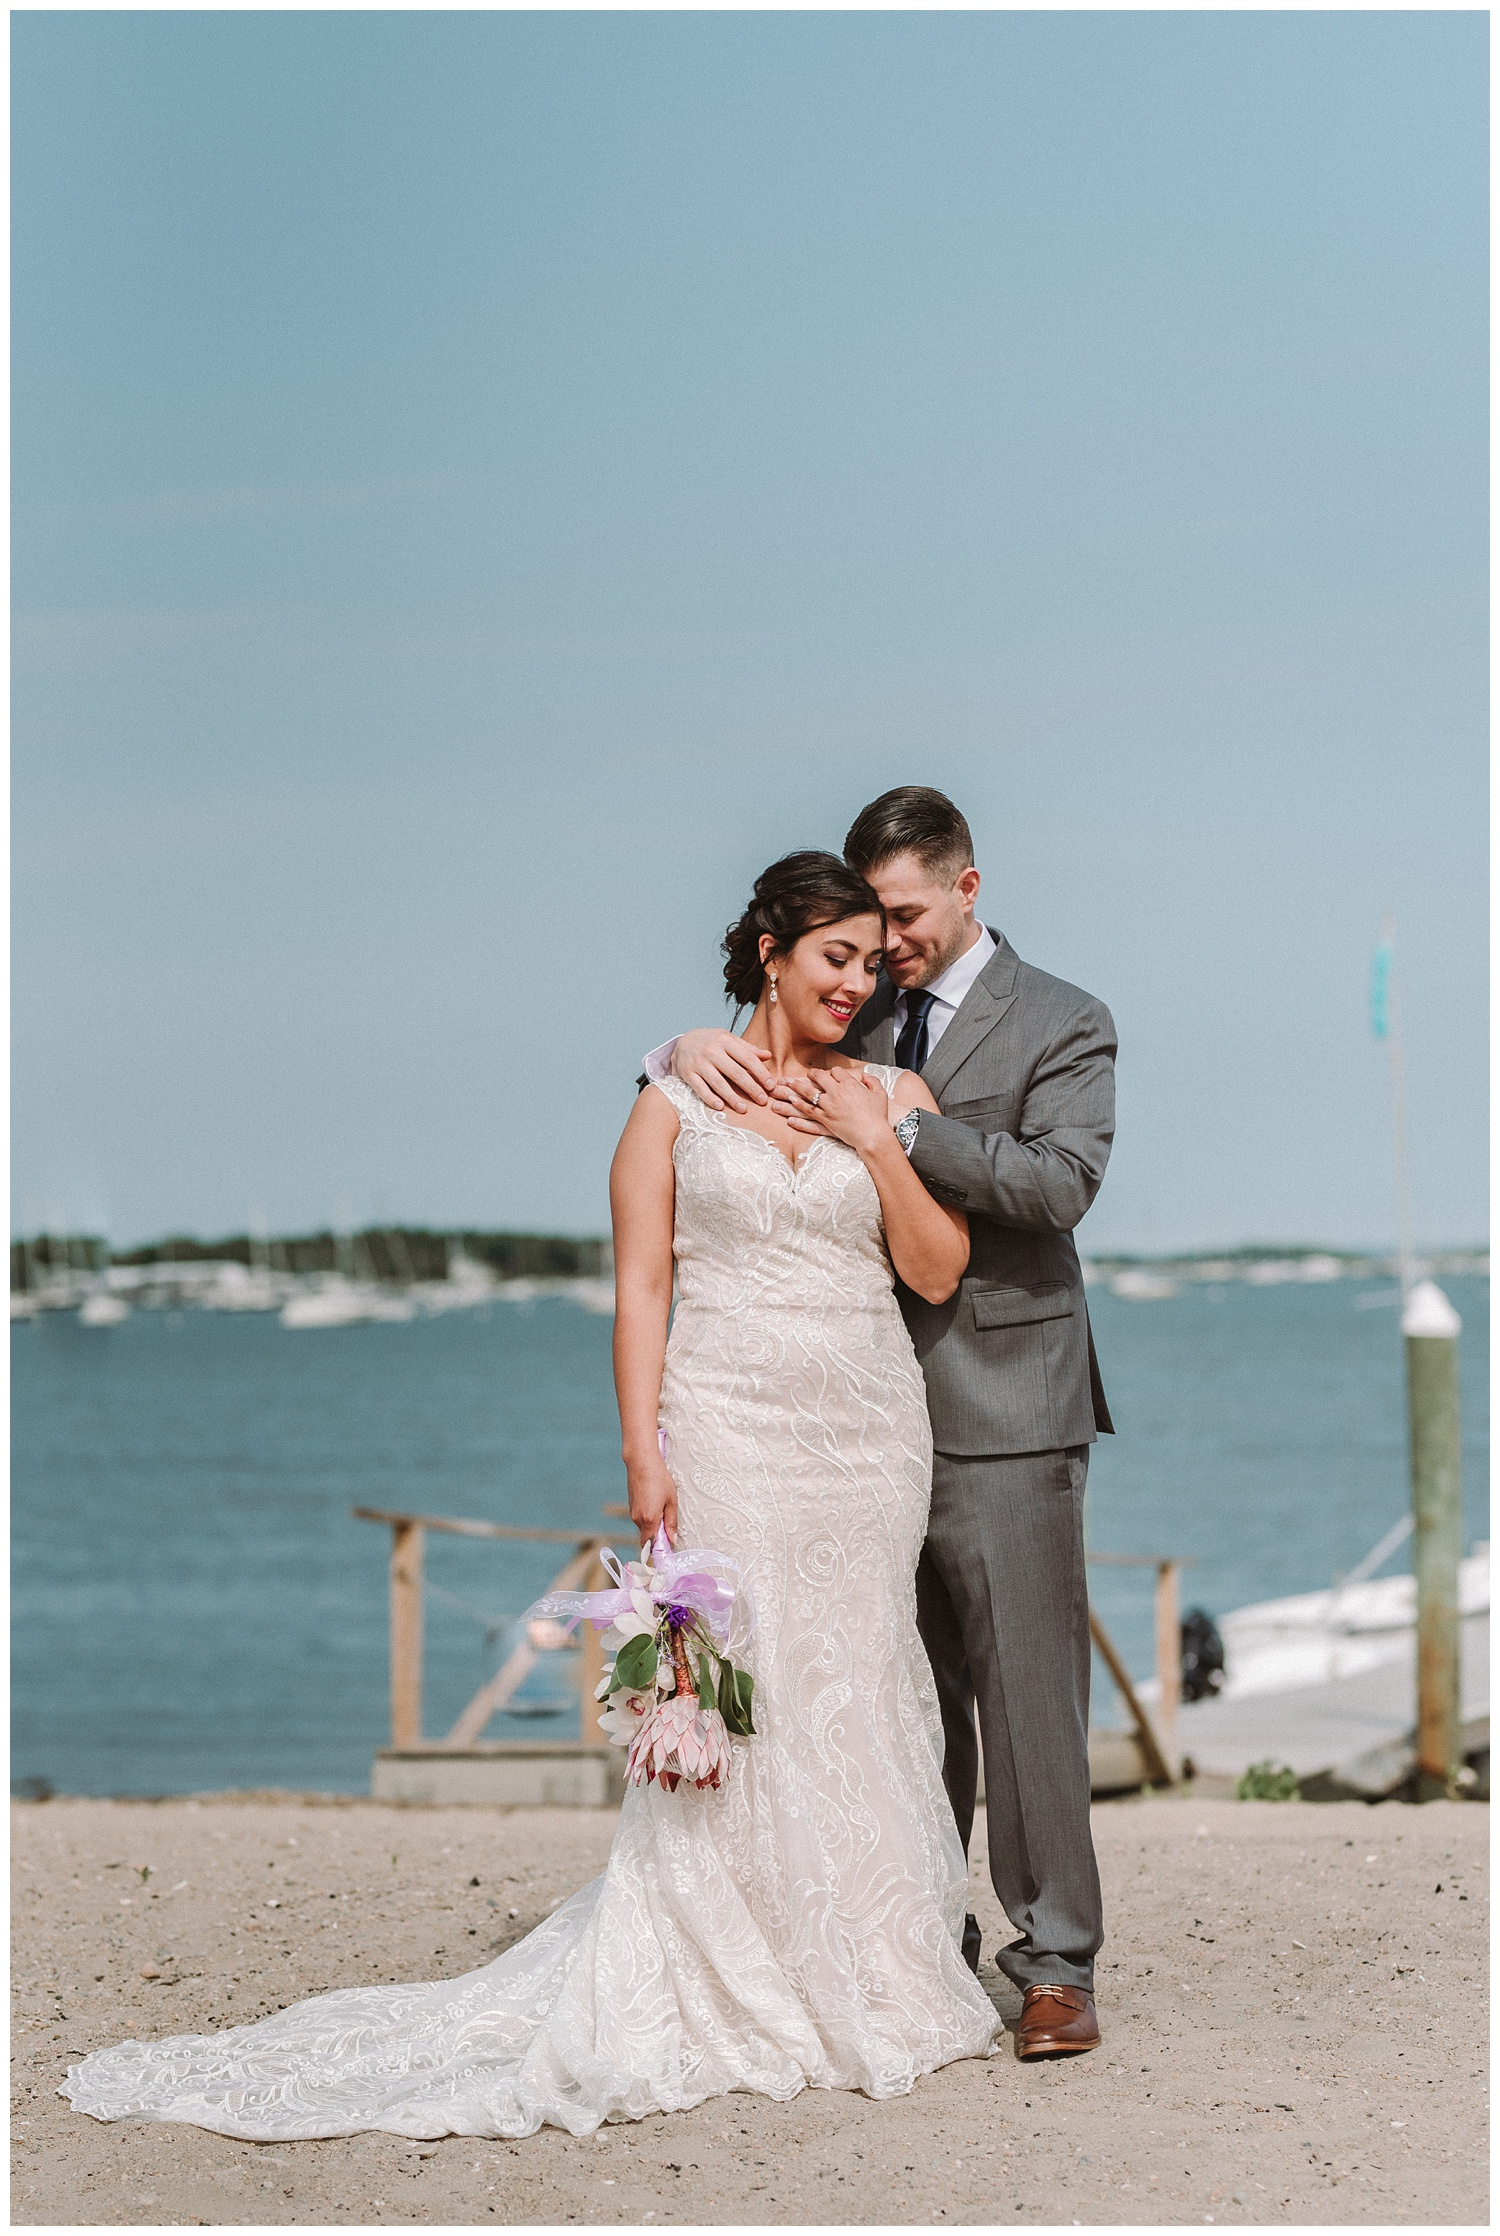 Shining Tides Wedding Mattapoisett Wedding - Photographer44.jpg